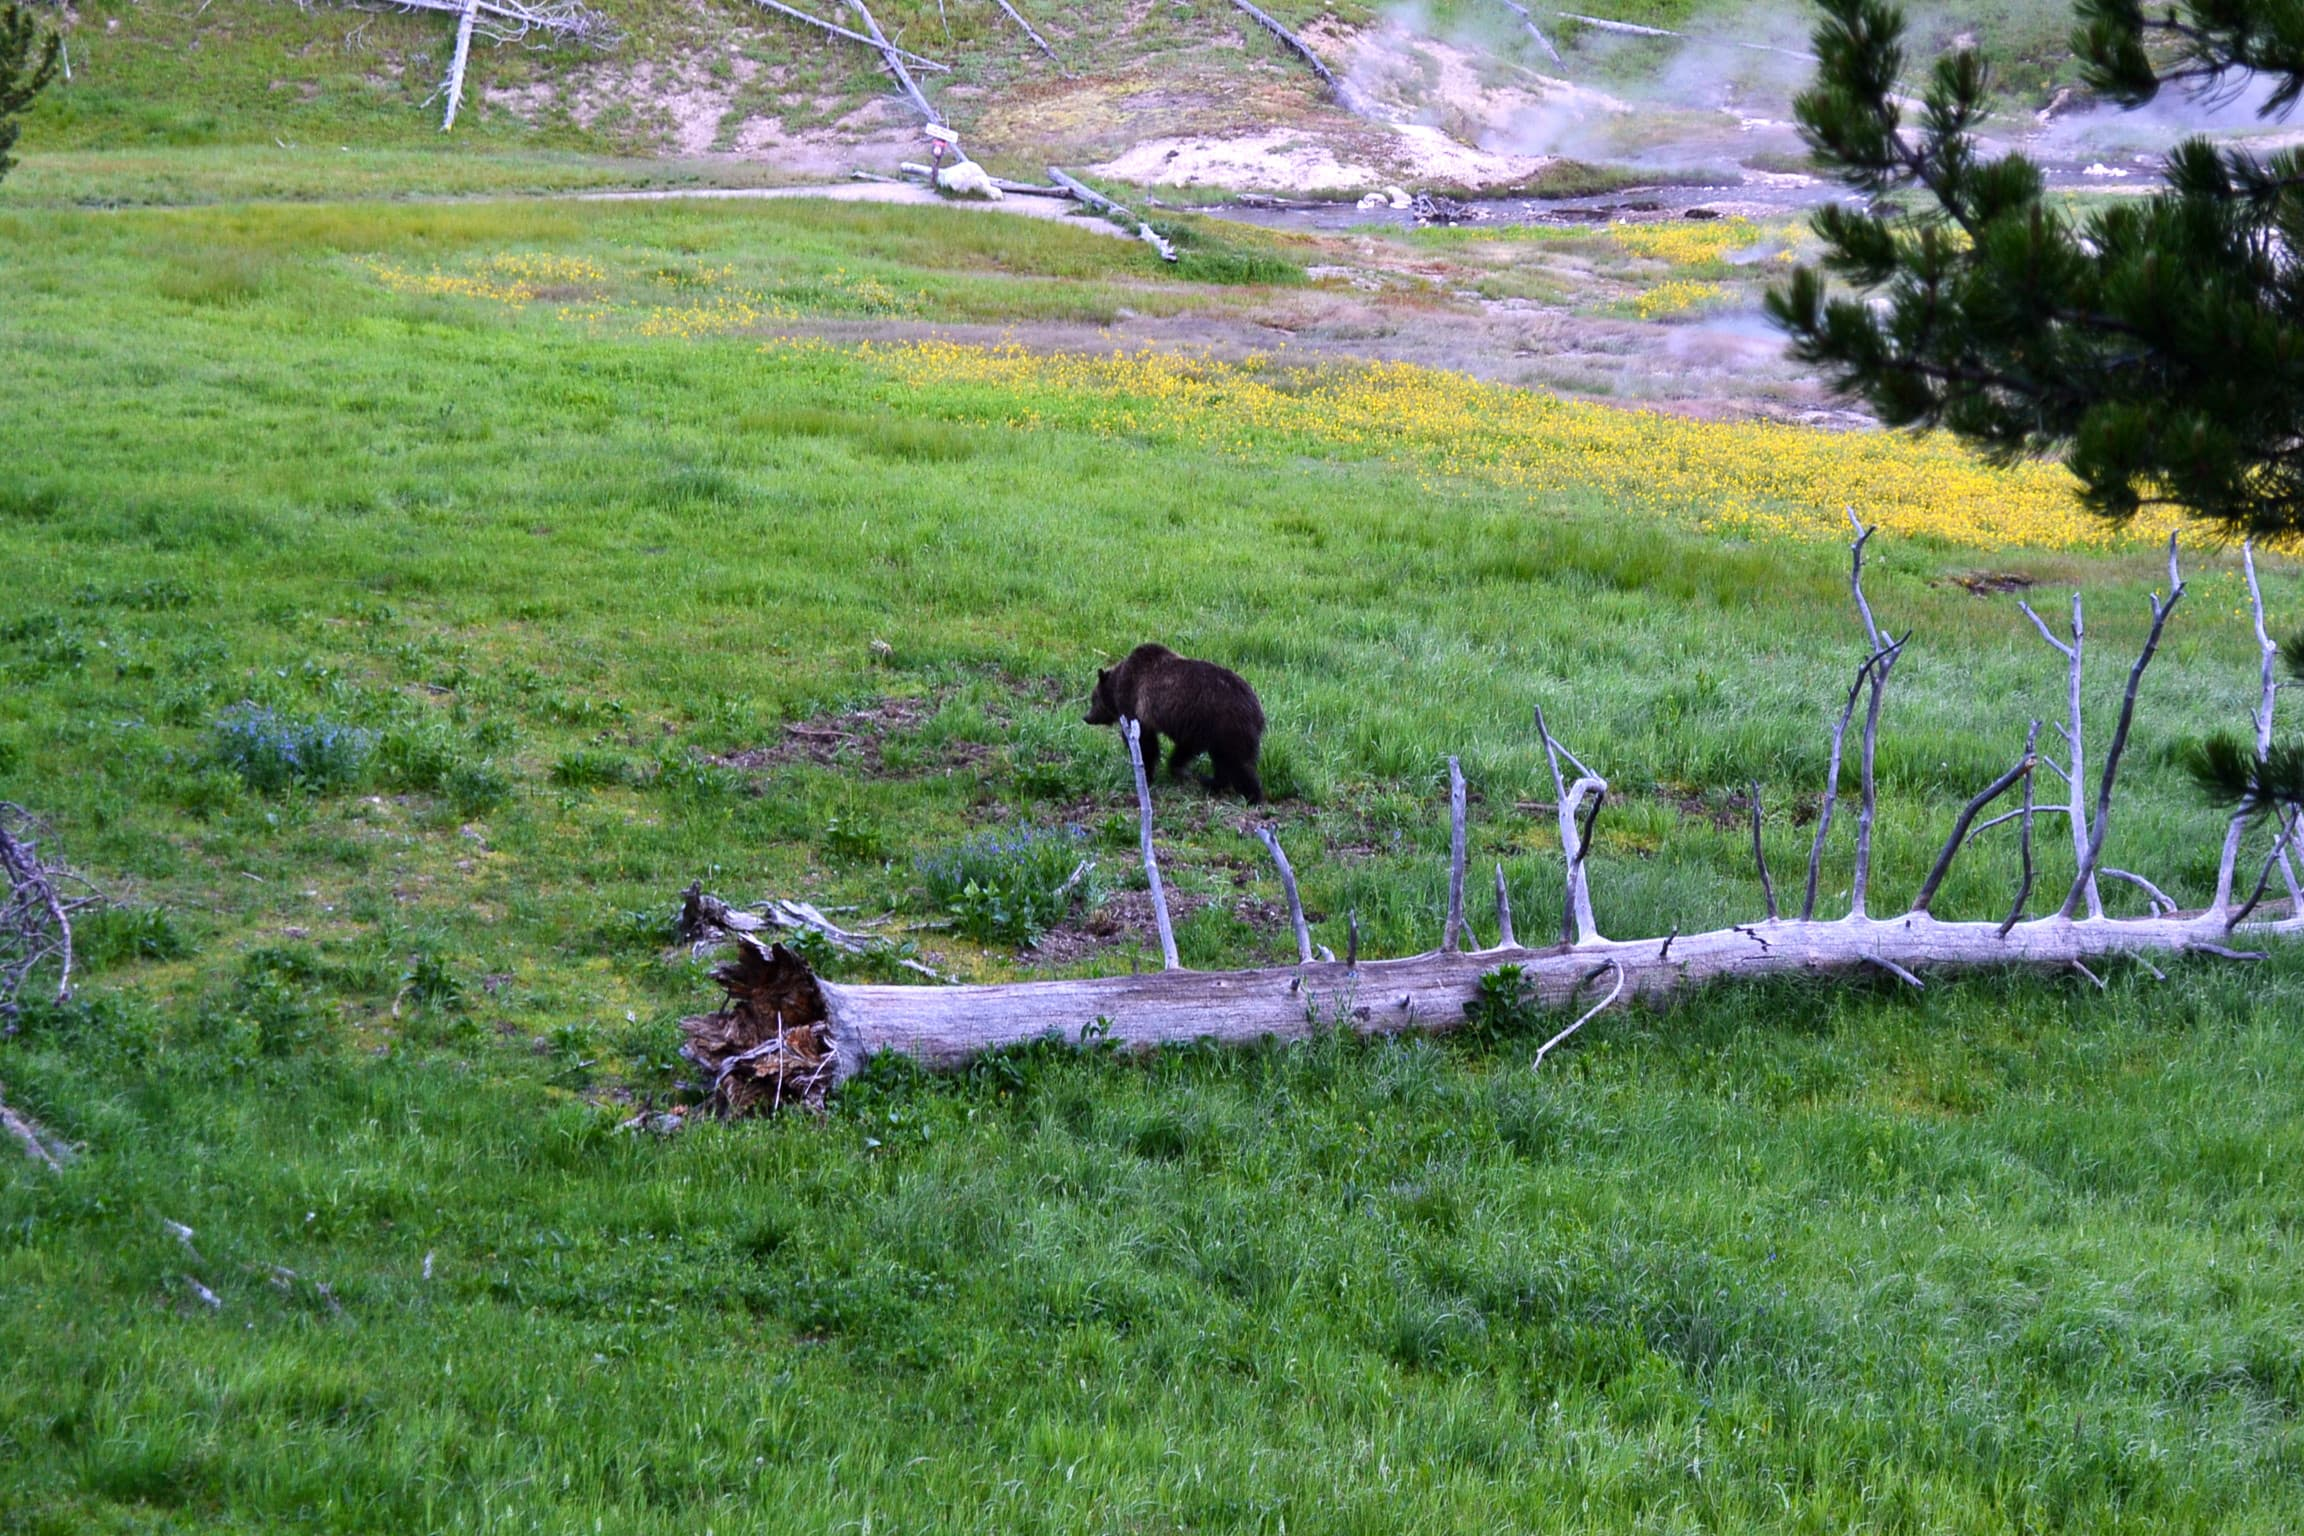 Grizzly bear walking away from tourists.